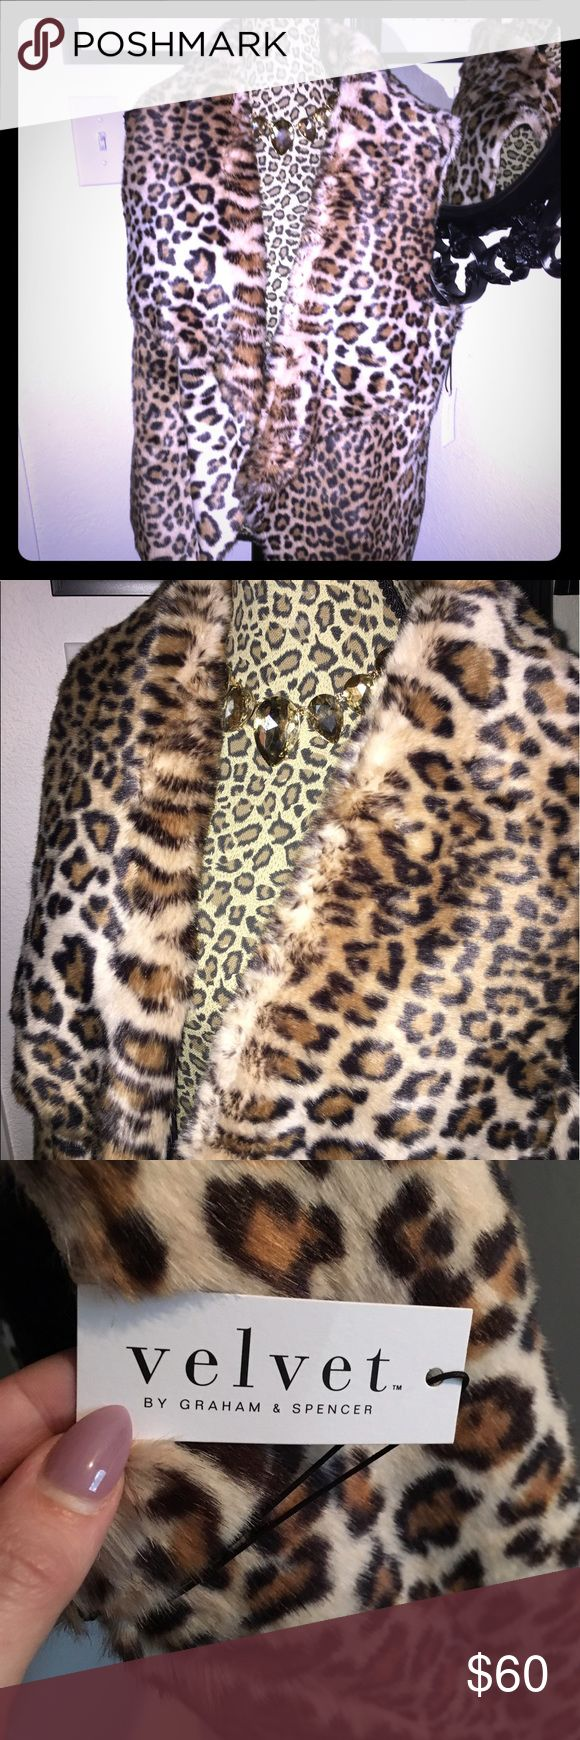 NWT Velvet by Graham & Spencer faux fur leopard L Brand-new with tags leopard print faux fur vest. Gorgeous and has pockets for holding all your necessities close at hand. Marked a size large but could fit bigger or smaller depending on how much drape you want in your vest. Check out my closet for more great listings! Velvet Jackets & Coats Vests